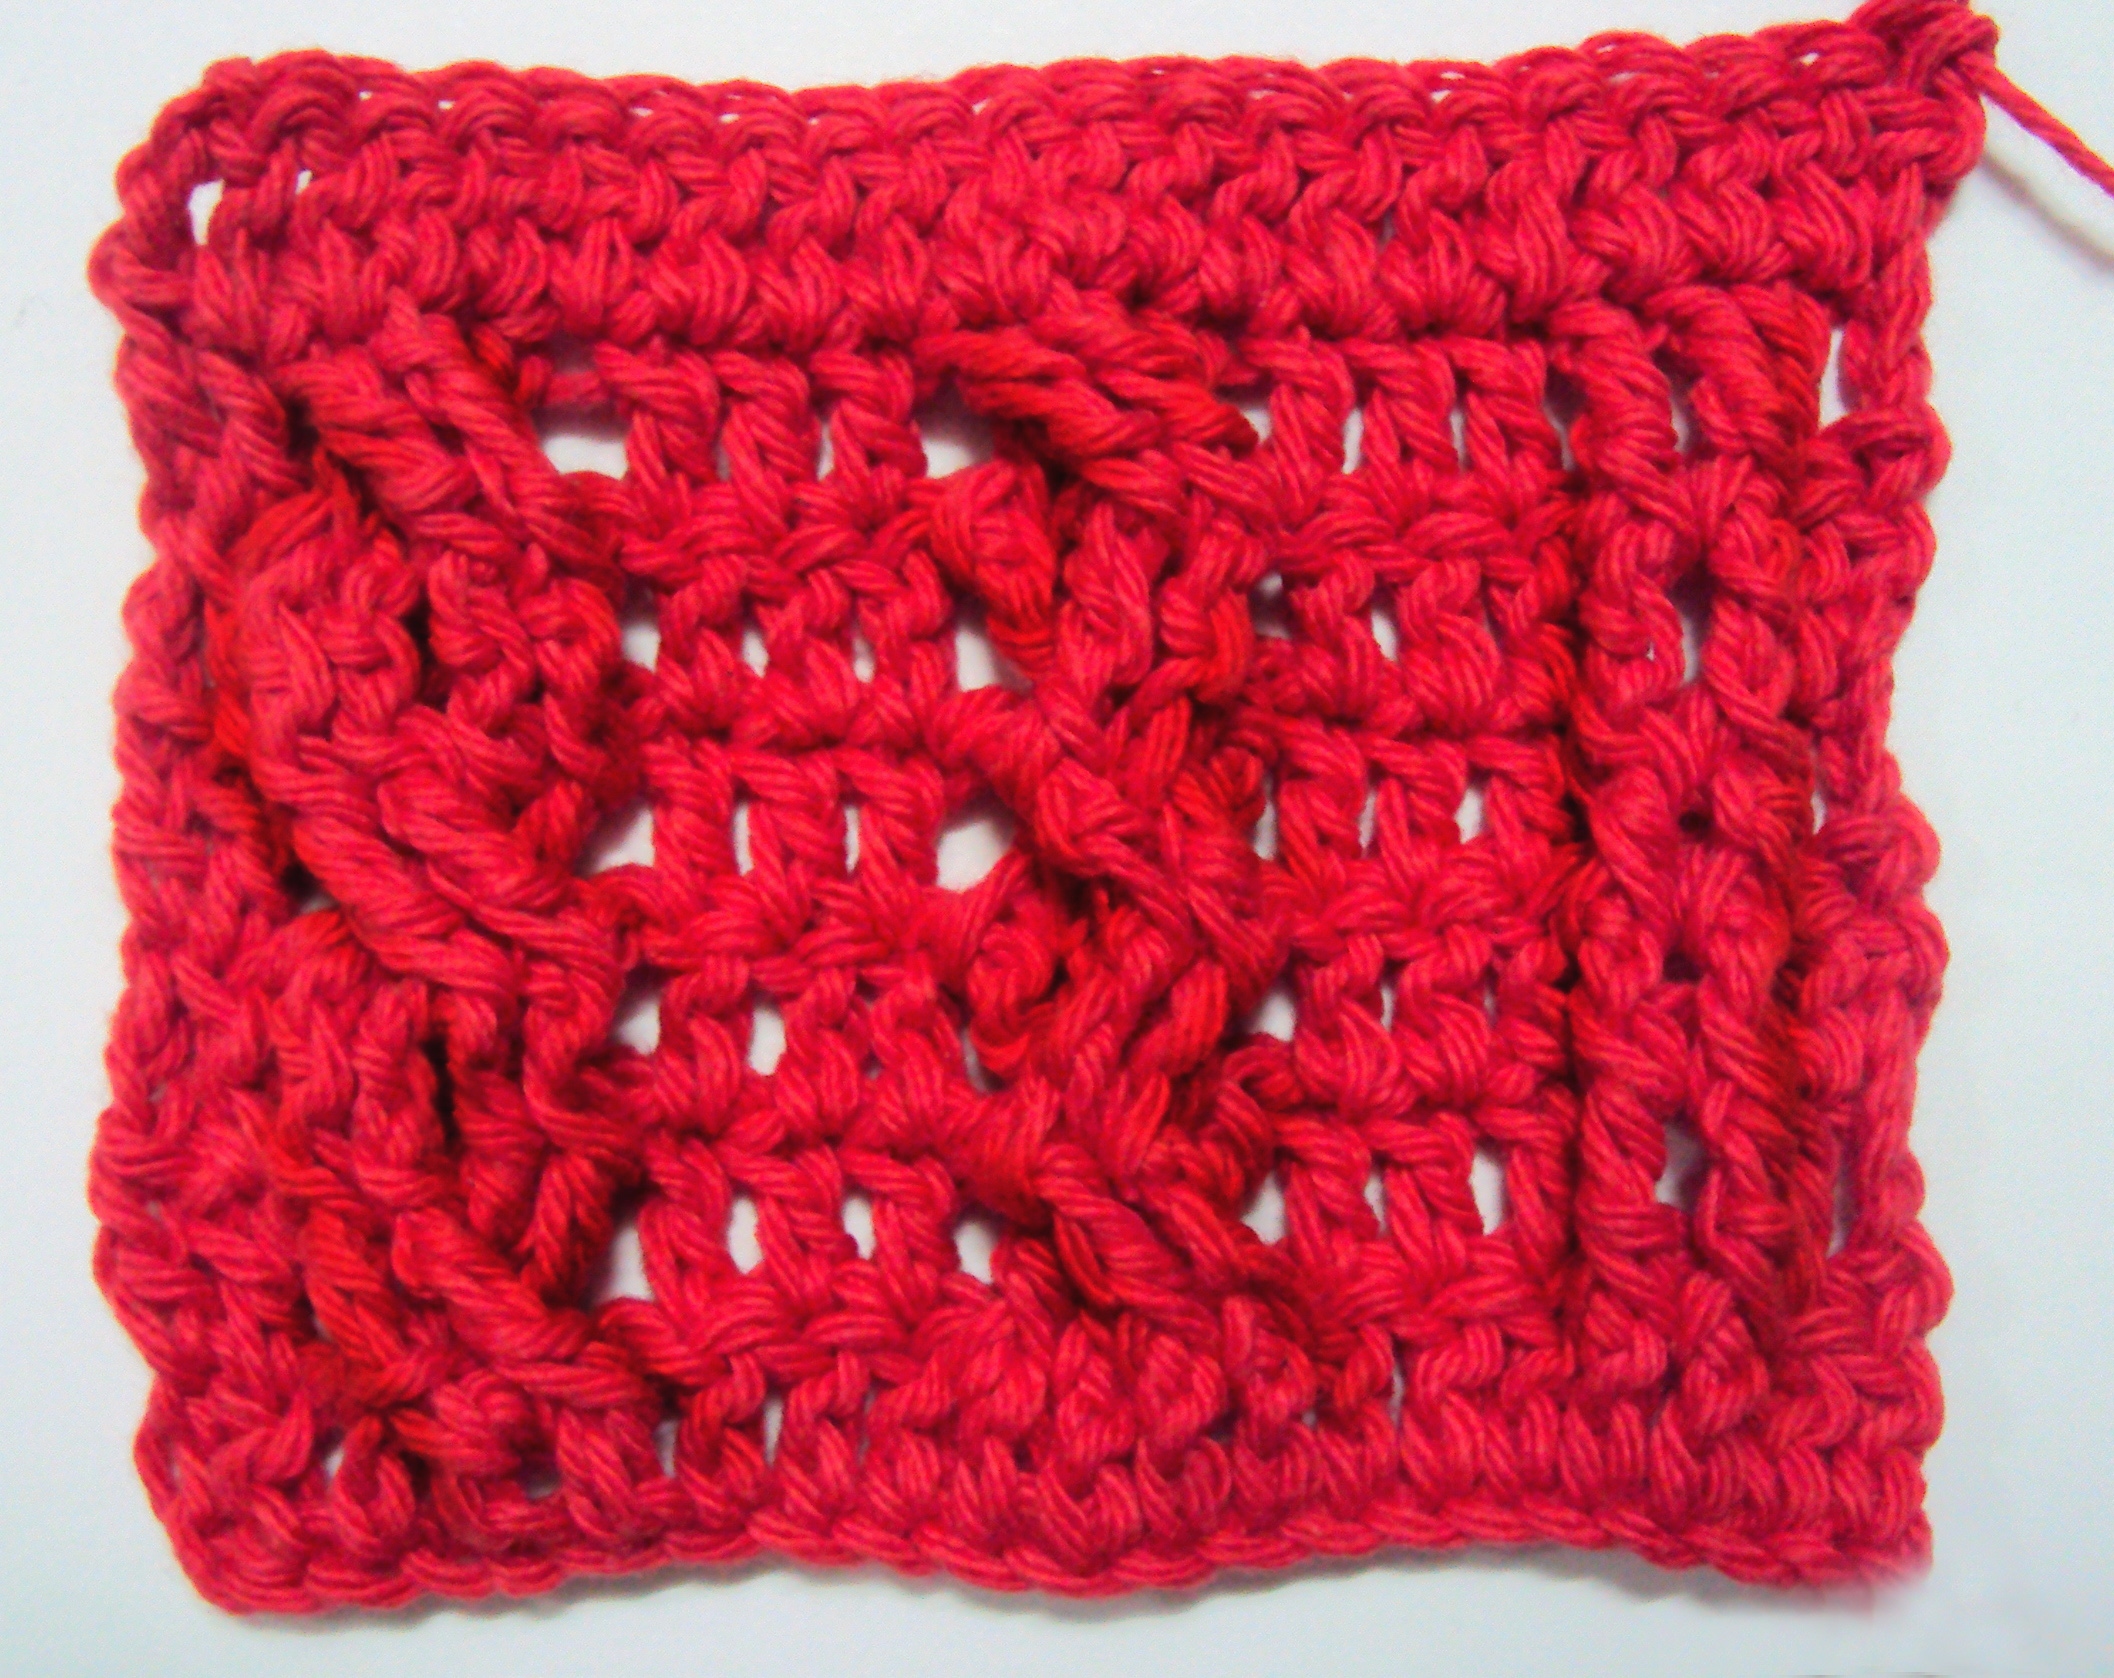 Instructions On How To Crochet : How to Crochet: Cable Stitches - Crochet Patterns, Tutorials and News ...